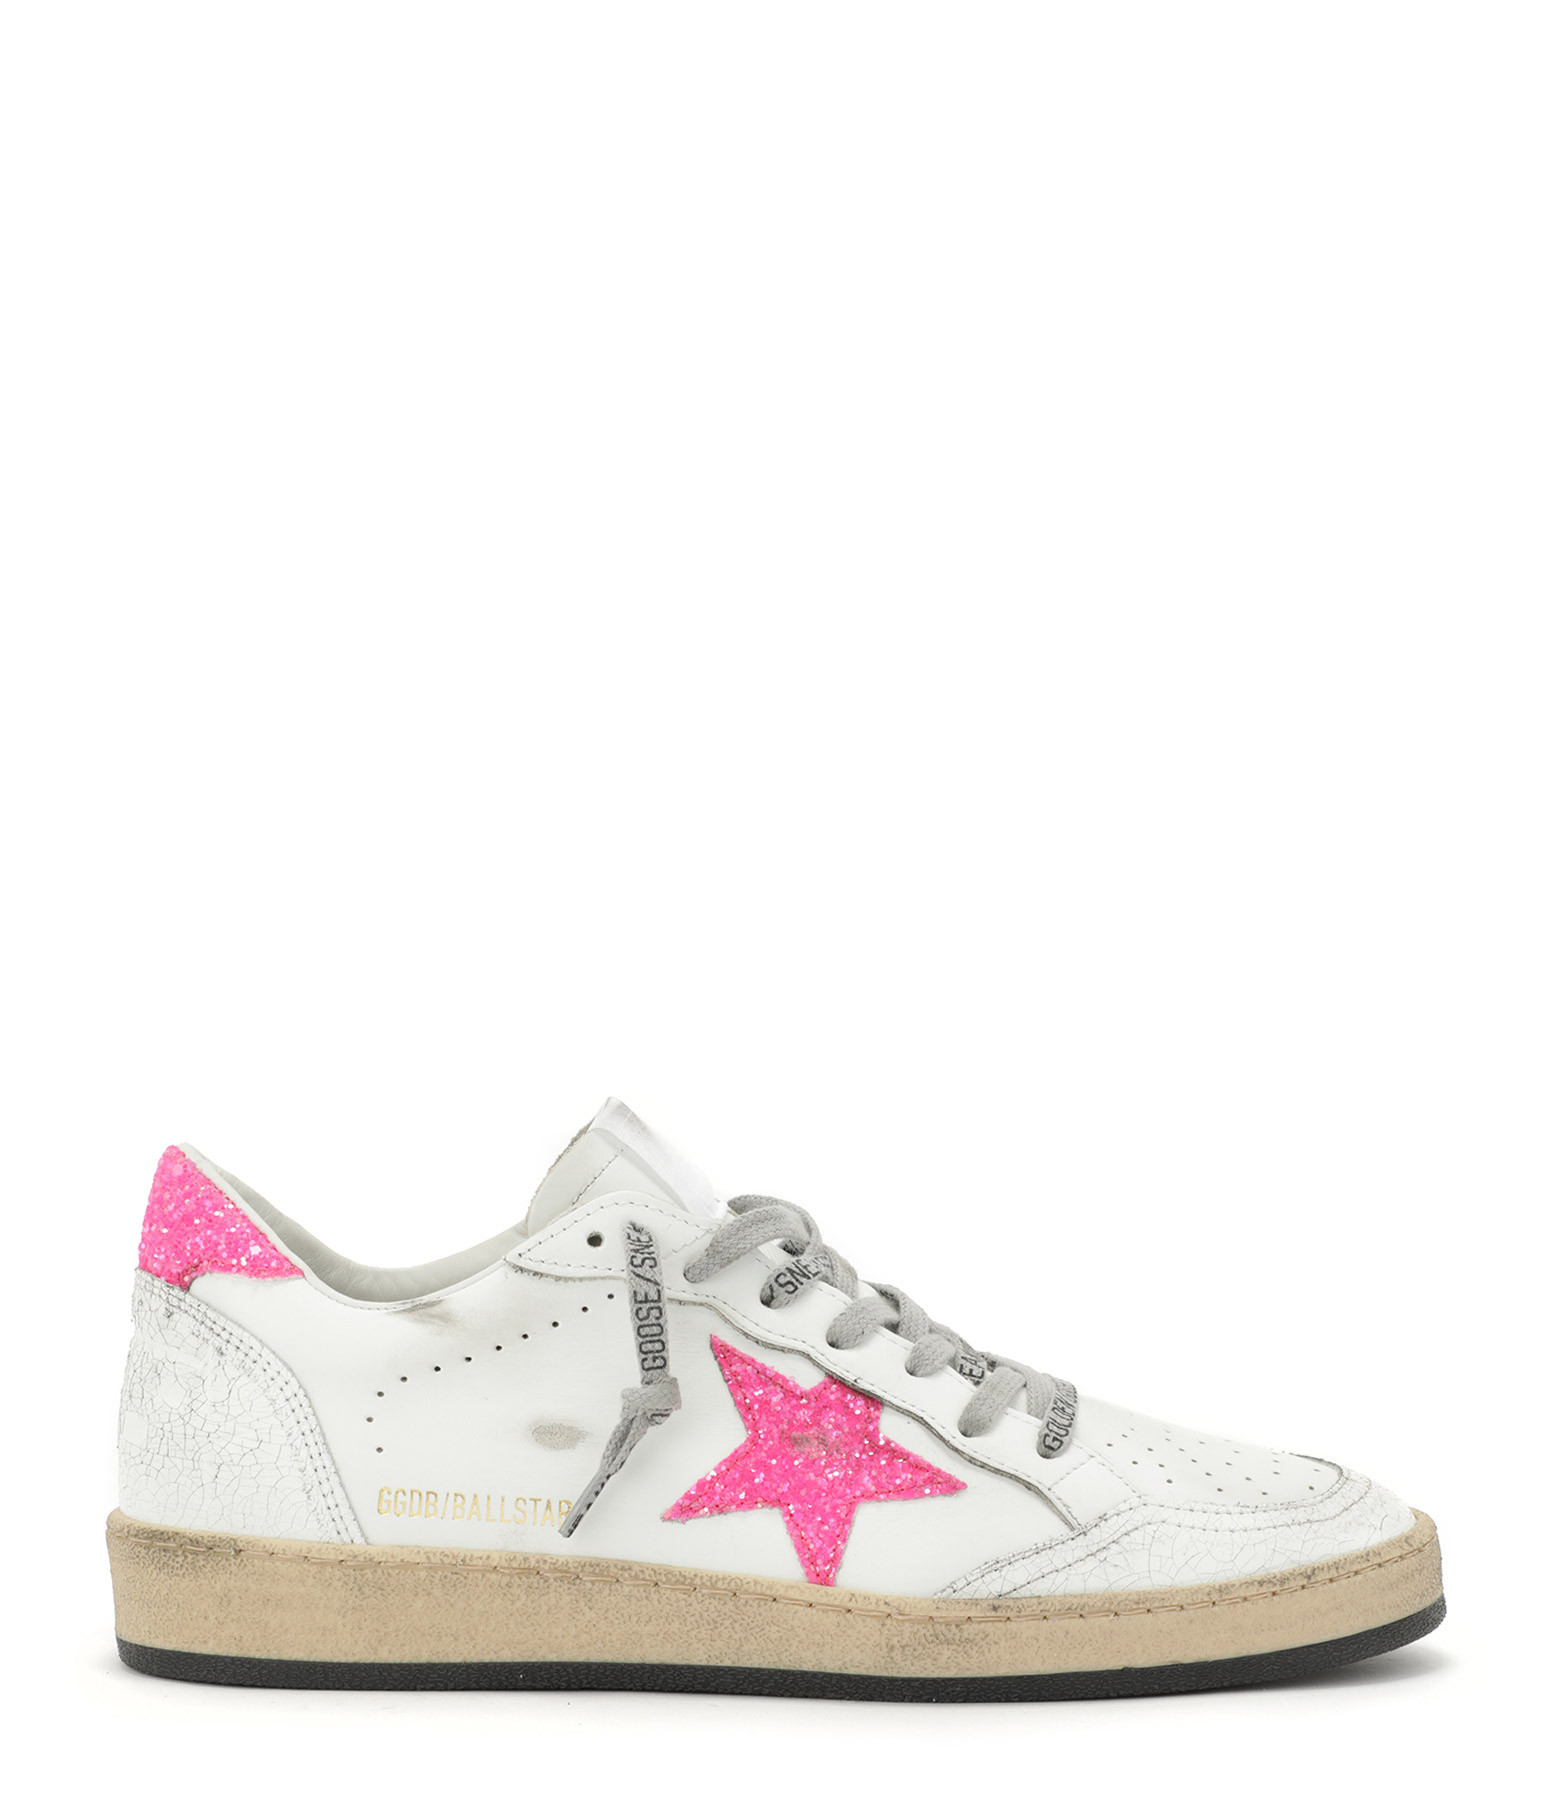 GOLDEN GOOSE - Baskets Ball Star Cuir Glitter Blanc Rose Fluo